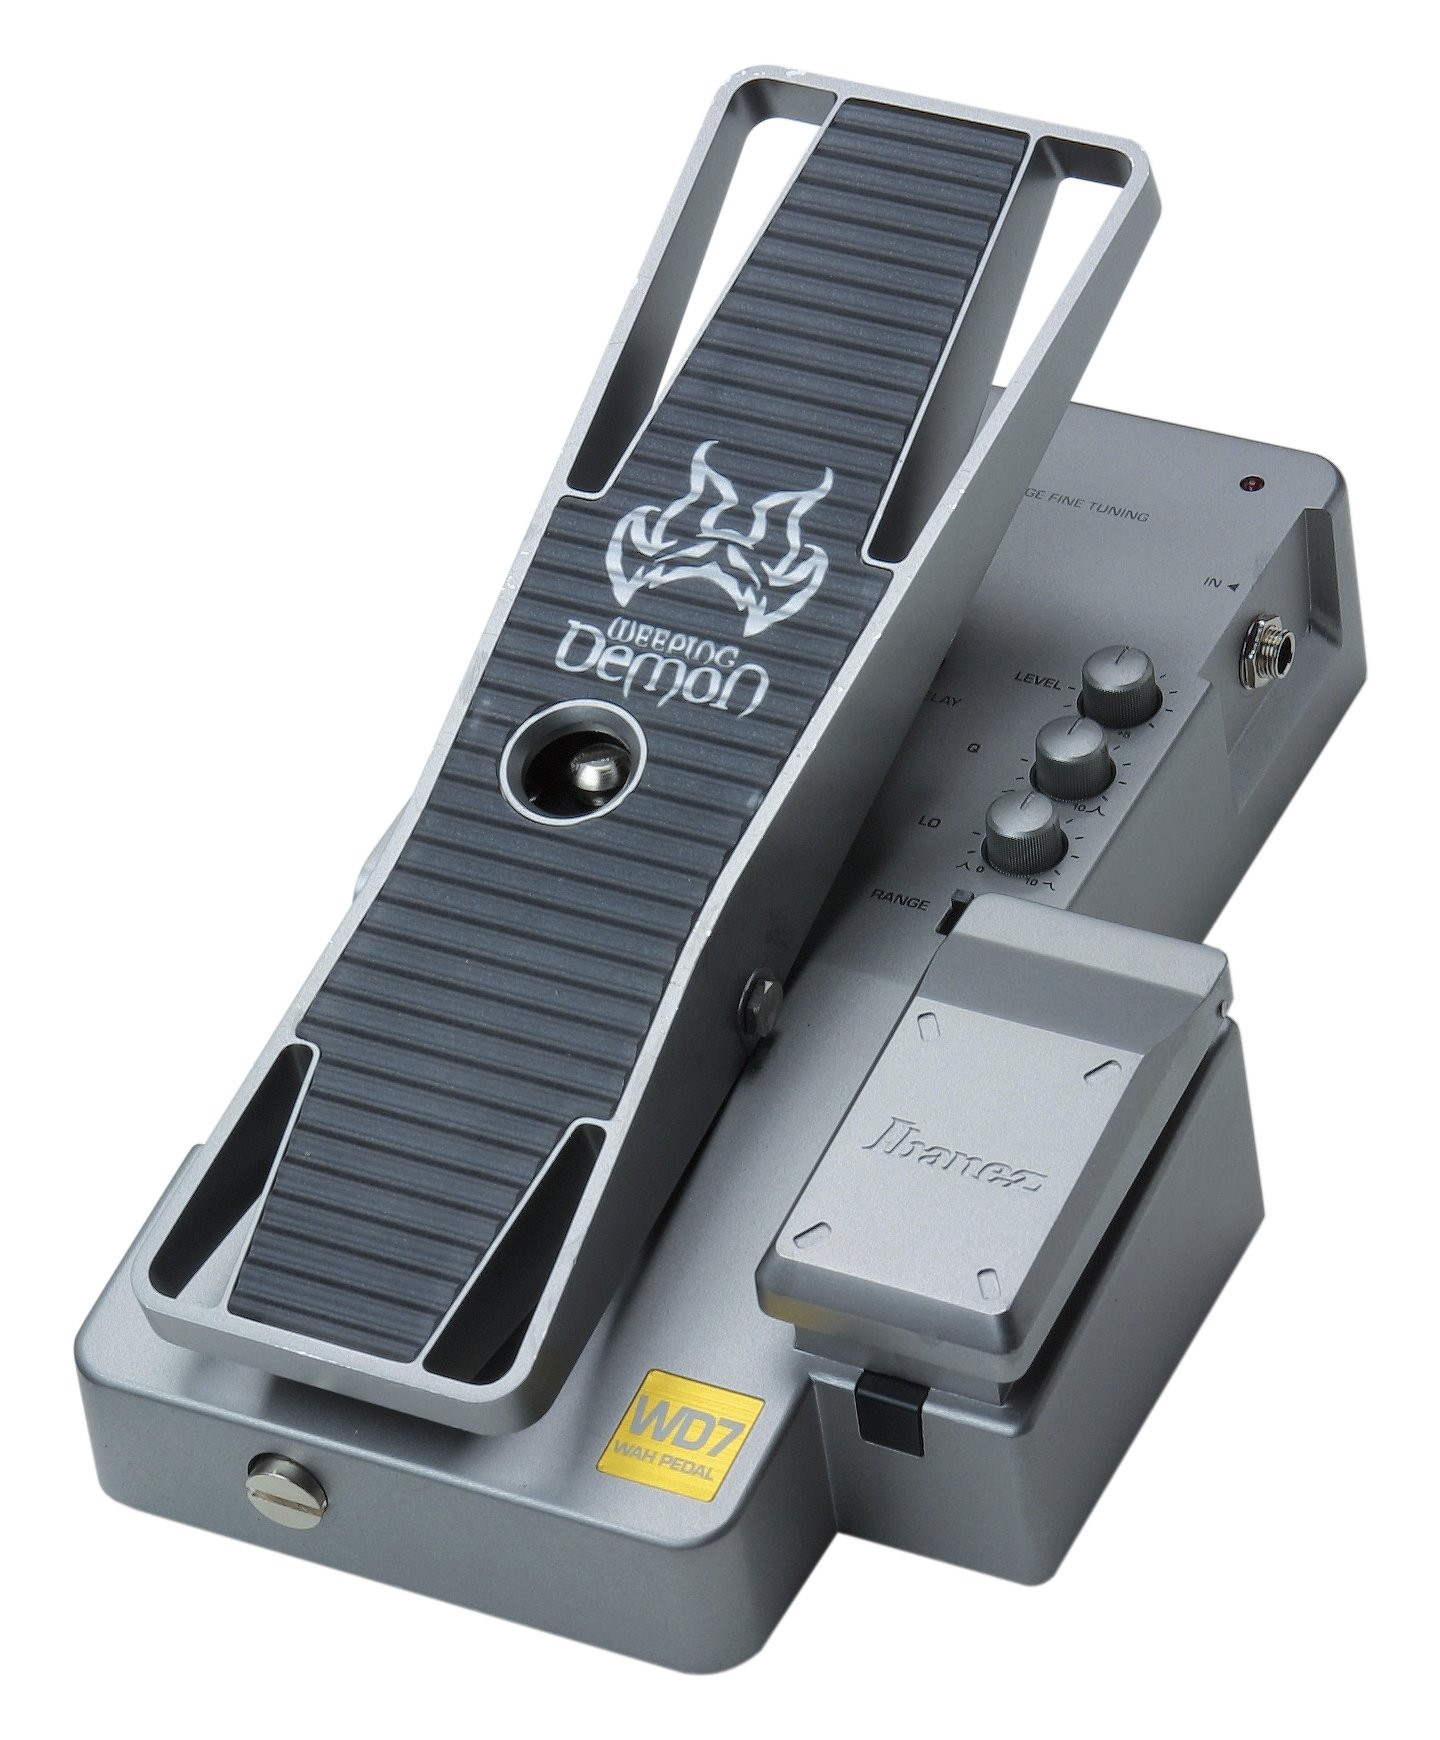 Best Rated In Electric Guitar Wah Filter Effects Helpful Circuit But With No Up And Down Variation Like The Pedal Allows Ibanez Wd7 Weeping Demon Product Image